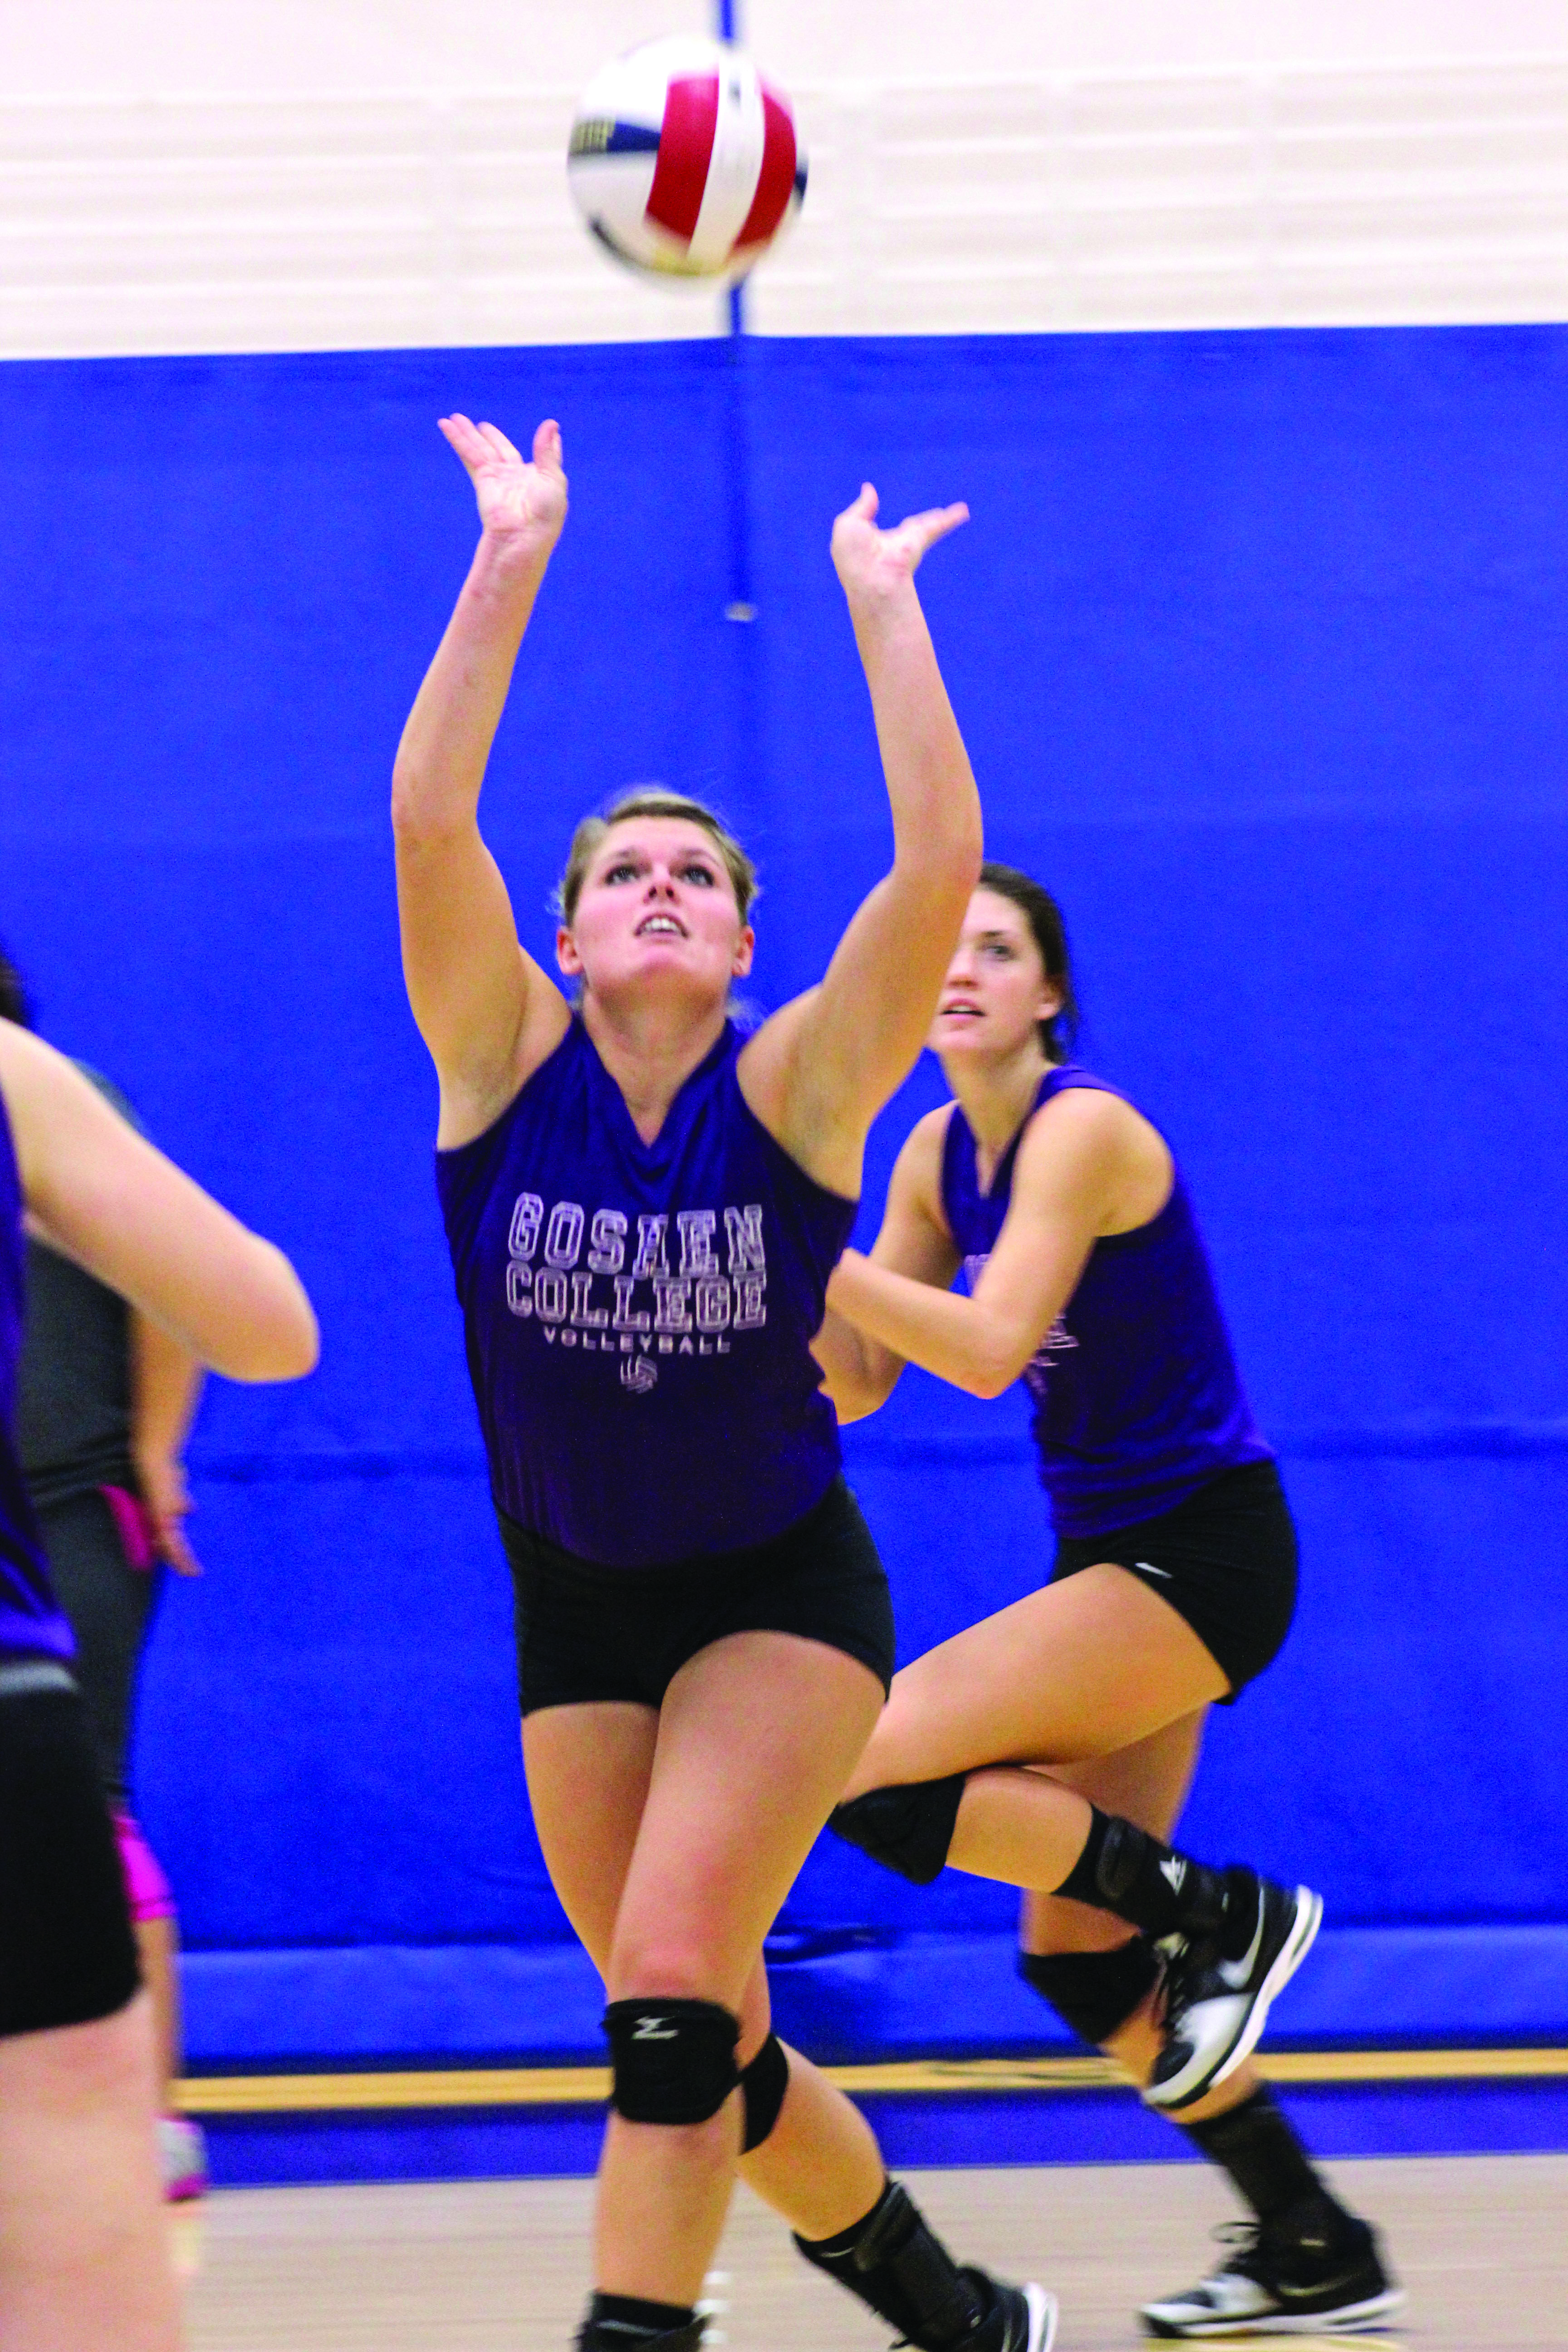 Stacy Wyse hits the volleyball during a game